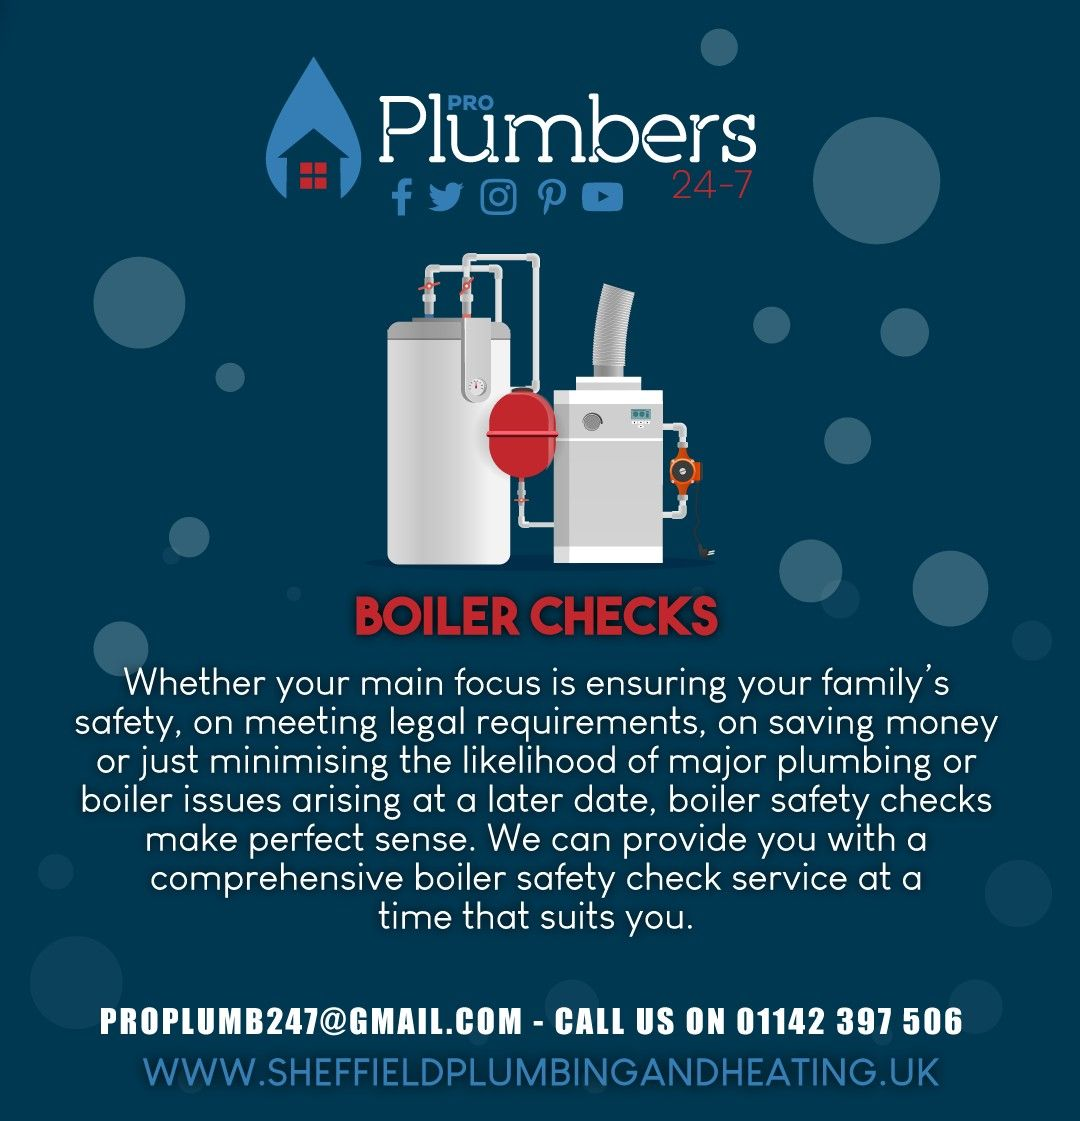 Boiler Checks Call Us On 01142397506 Proplumberss Vaillant Heating Boilers Installation Plumbers Services Plumber Plumbing Family Safety